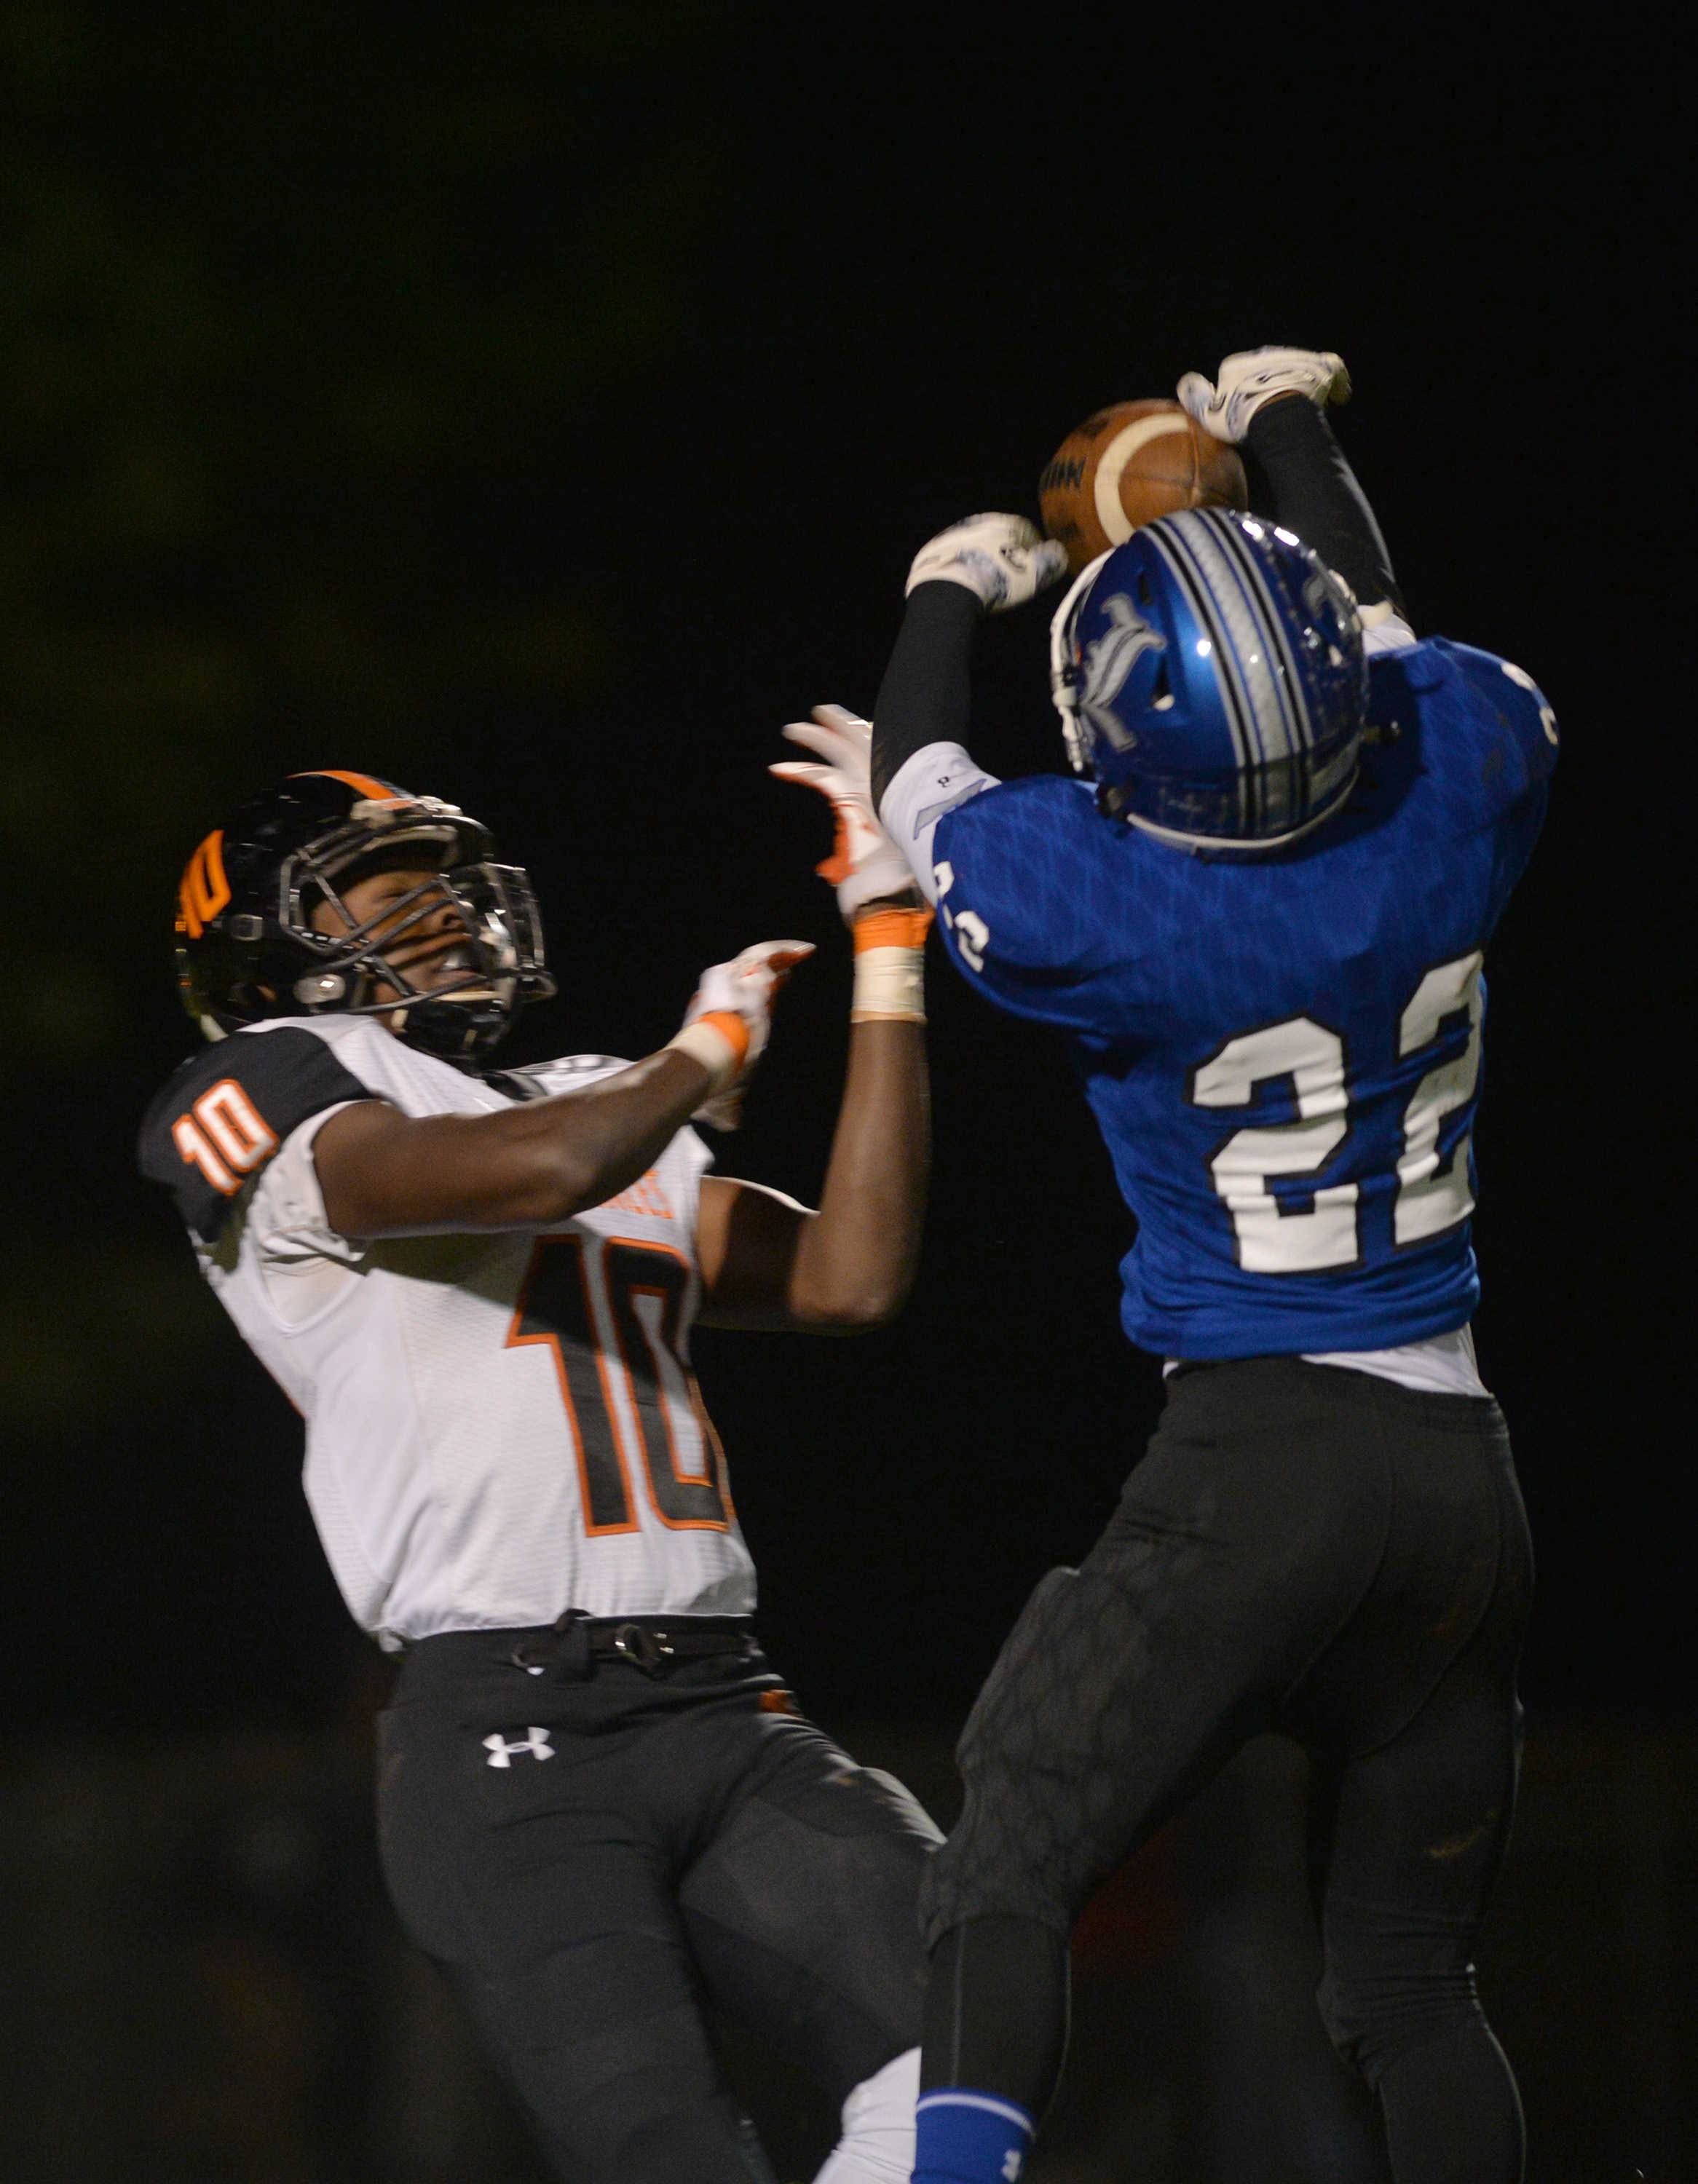 Larkin defensive back Denzel Goodwin (22) defends a pass intended for St. Charles East's Clayton Isbell in the second quarter of their Upstate Eight River contest Friday night at Memorial Field in Elgin.